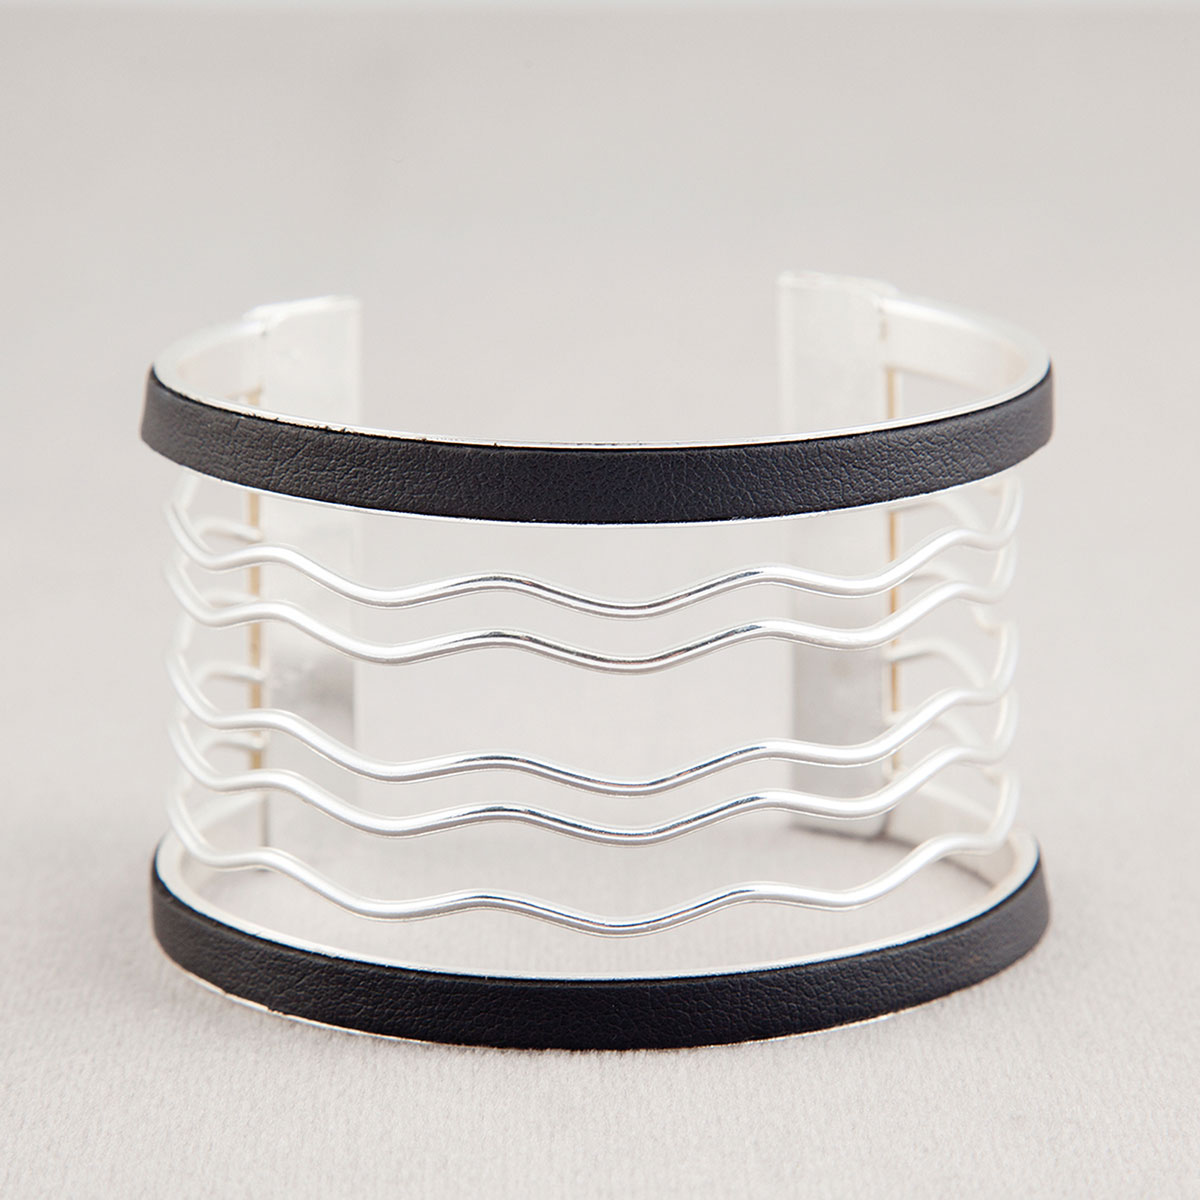 Silver Wave with Black Trim Cuff Bracelet